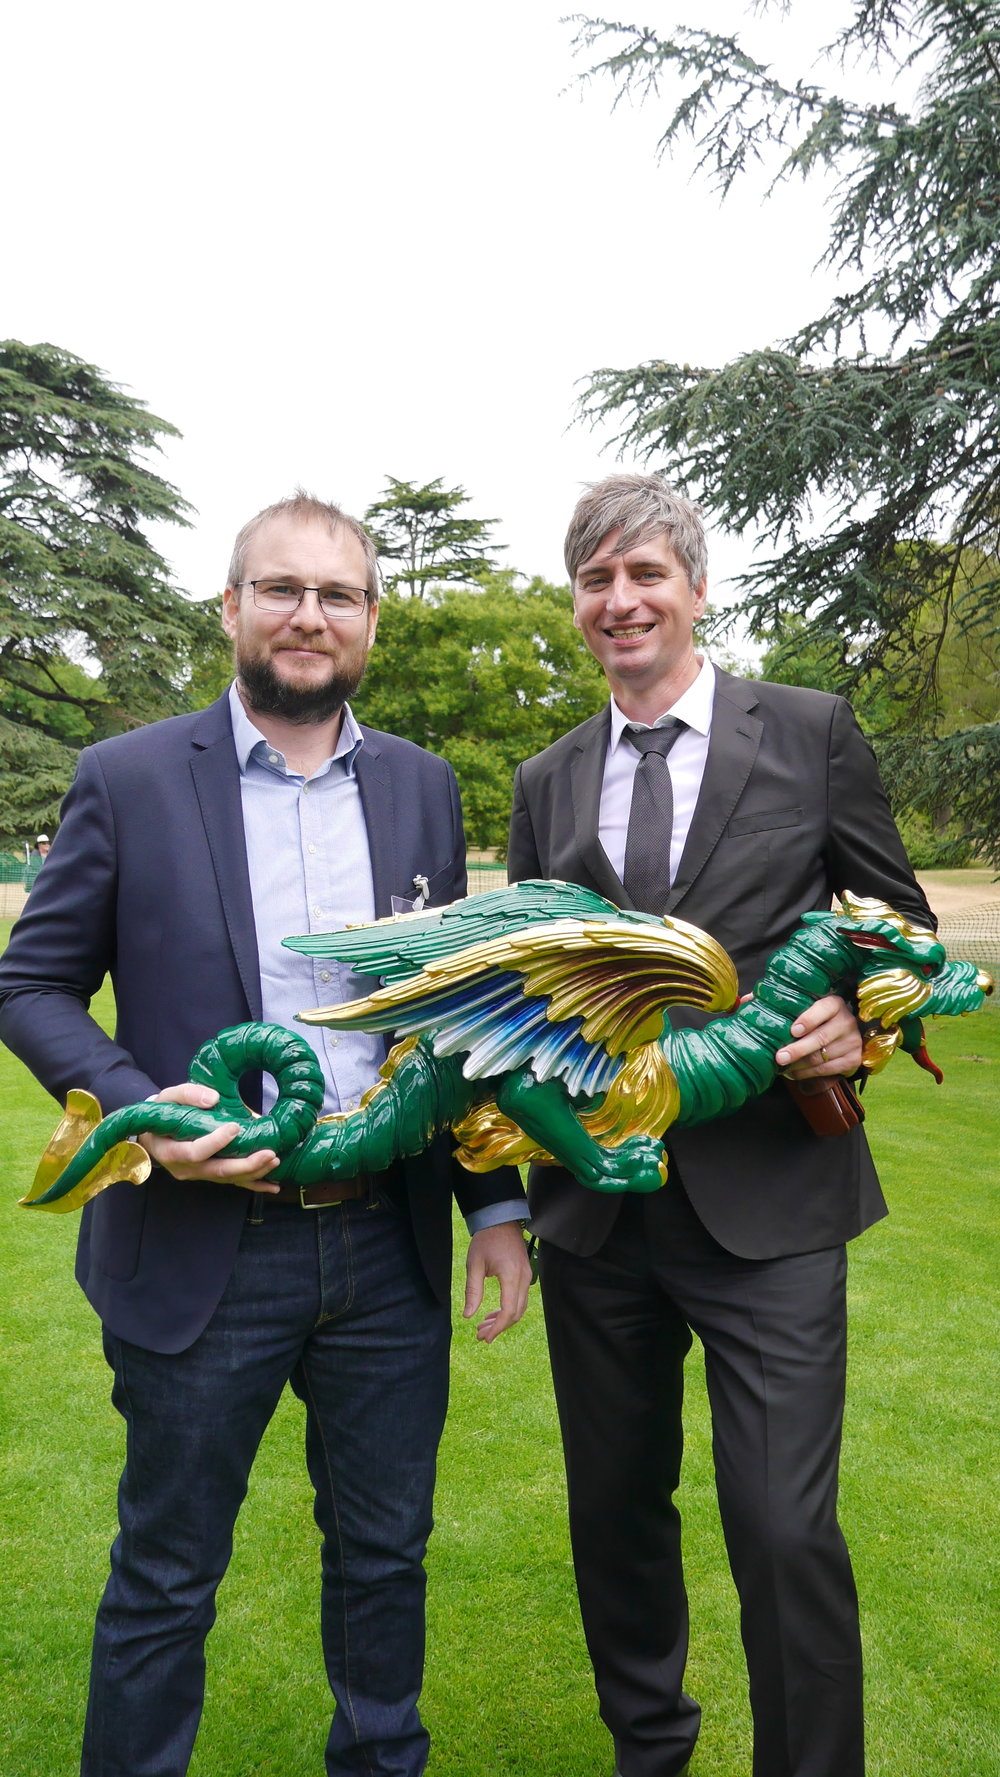 (from the left) 3D Systems'  Nick Lewis  and  Craig Hatto  of Historic Royal Palaces © HD Grzywnowicz, 2018